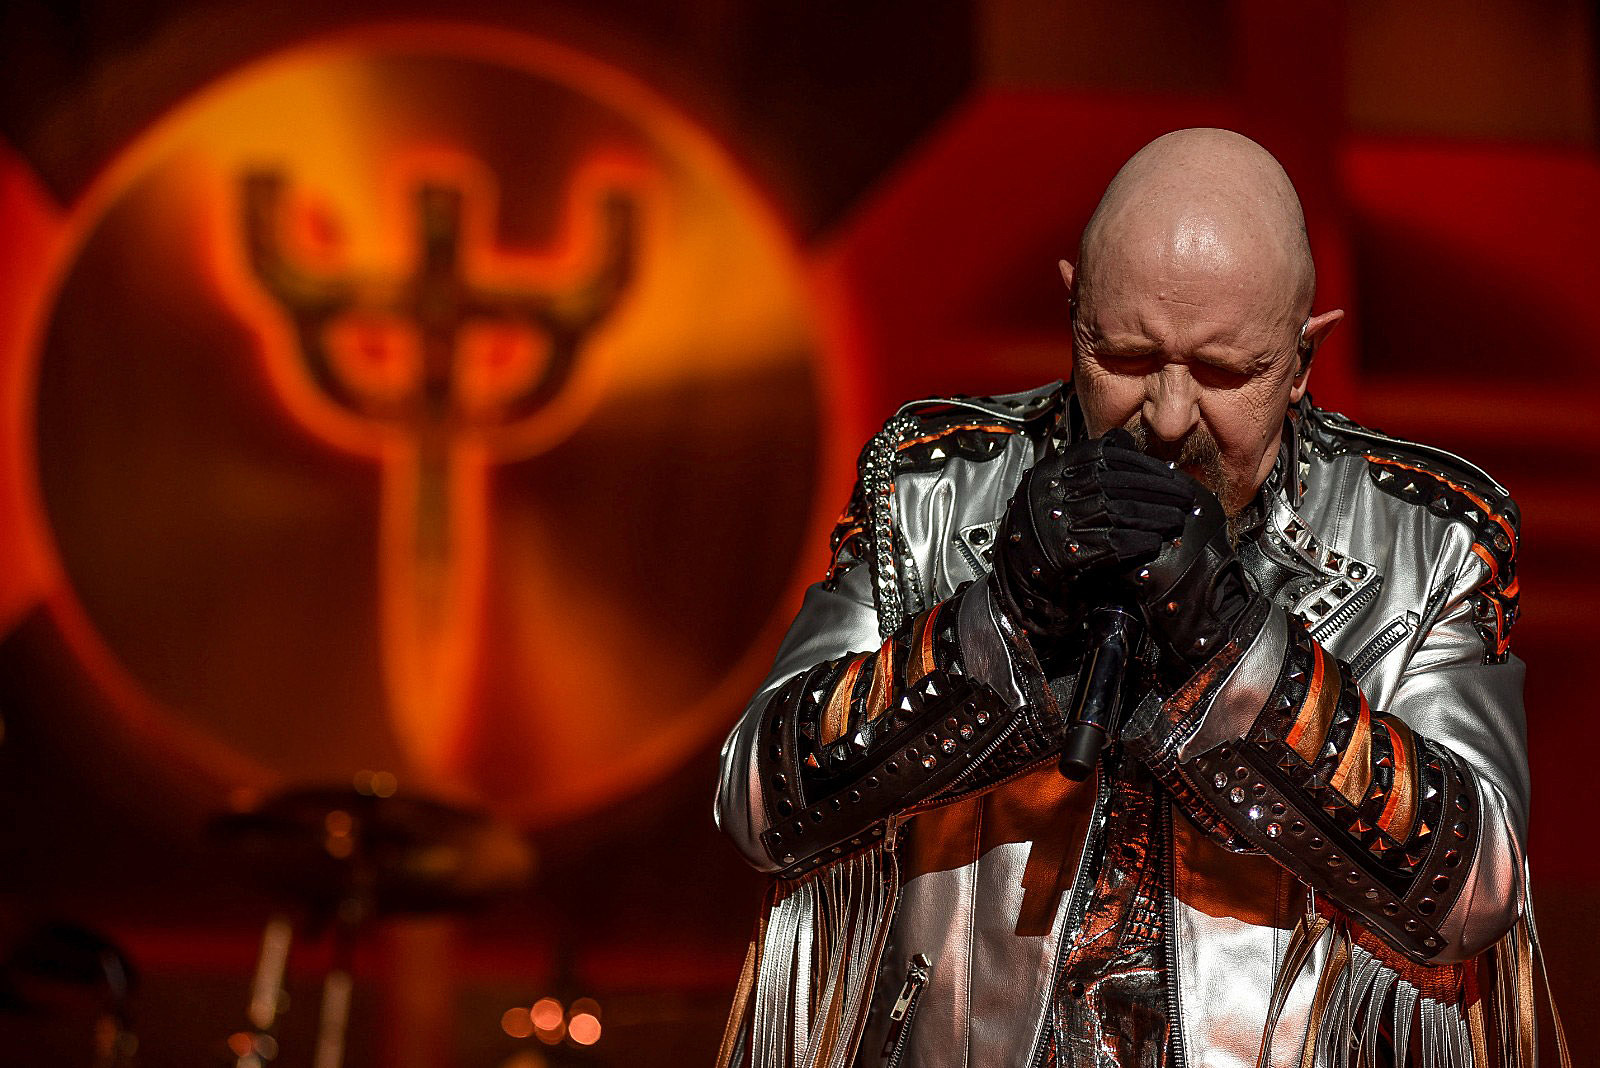 Judas Priest announce tour as new album tops year end lists